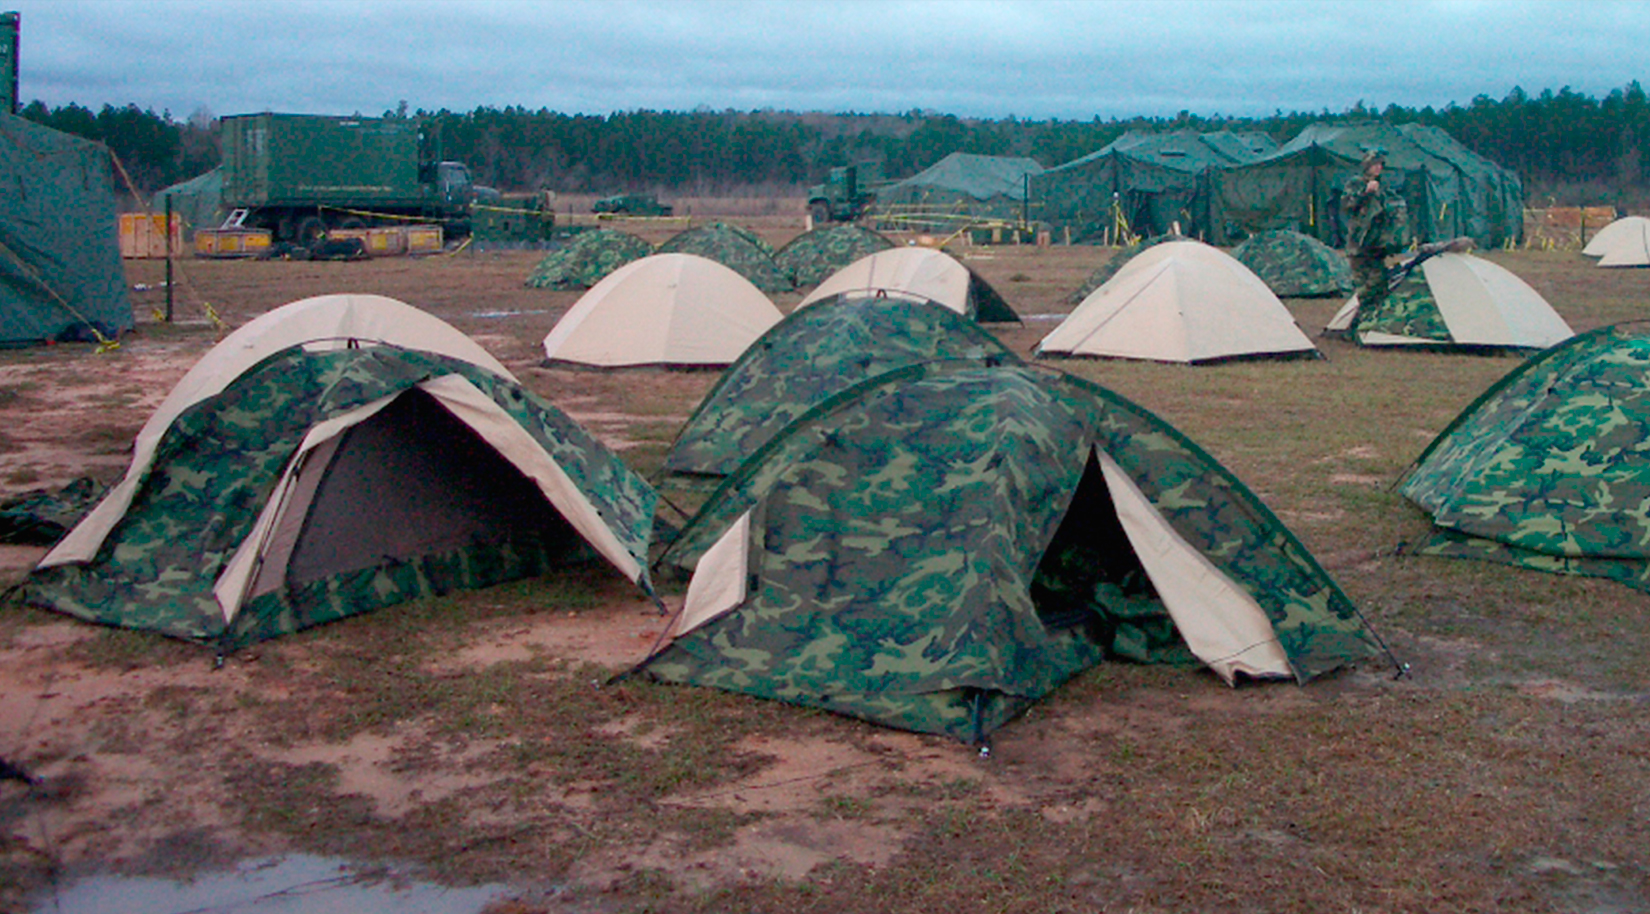 TCOP & Tent Combat One-Person